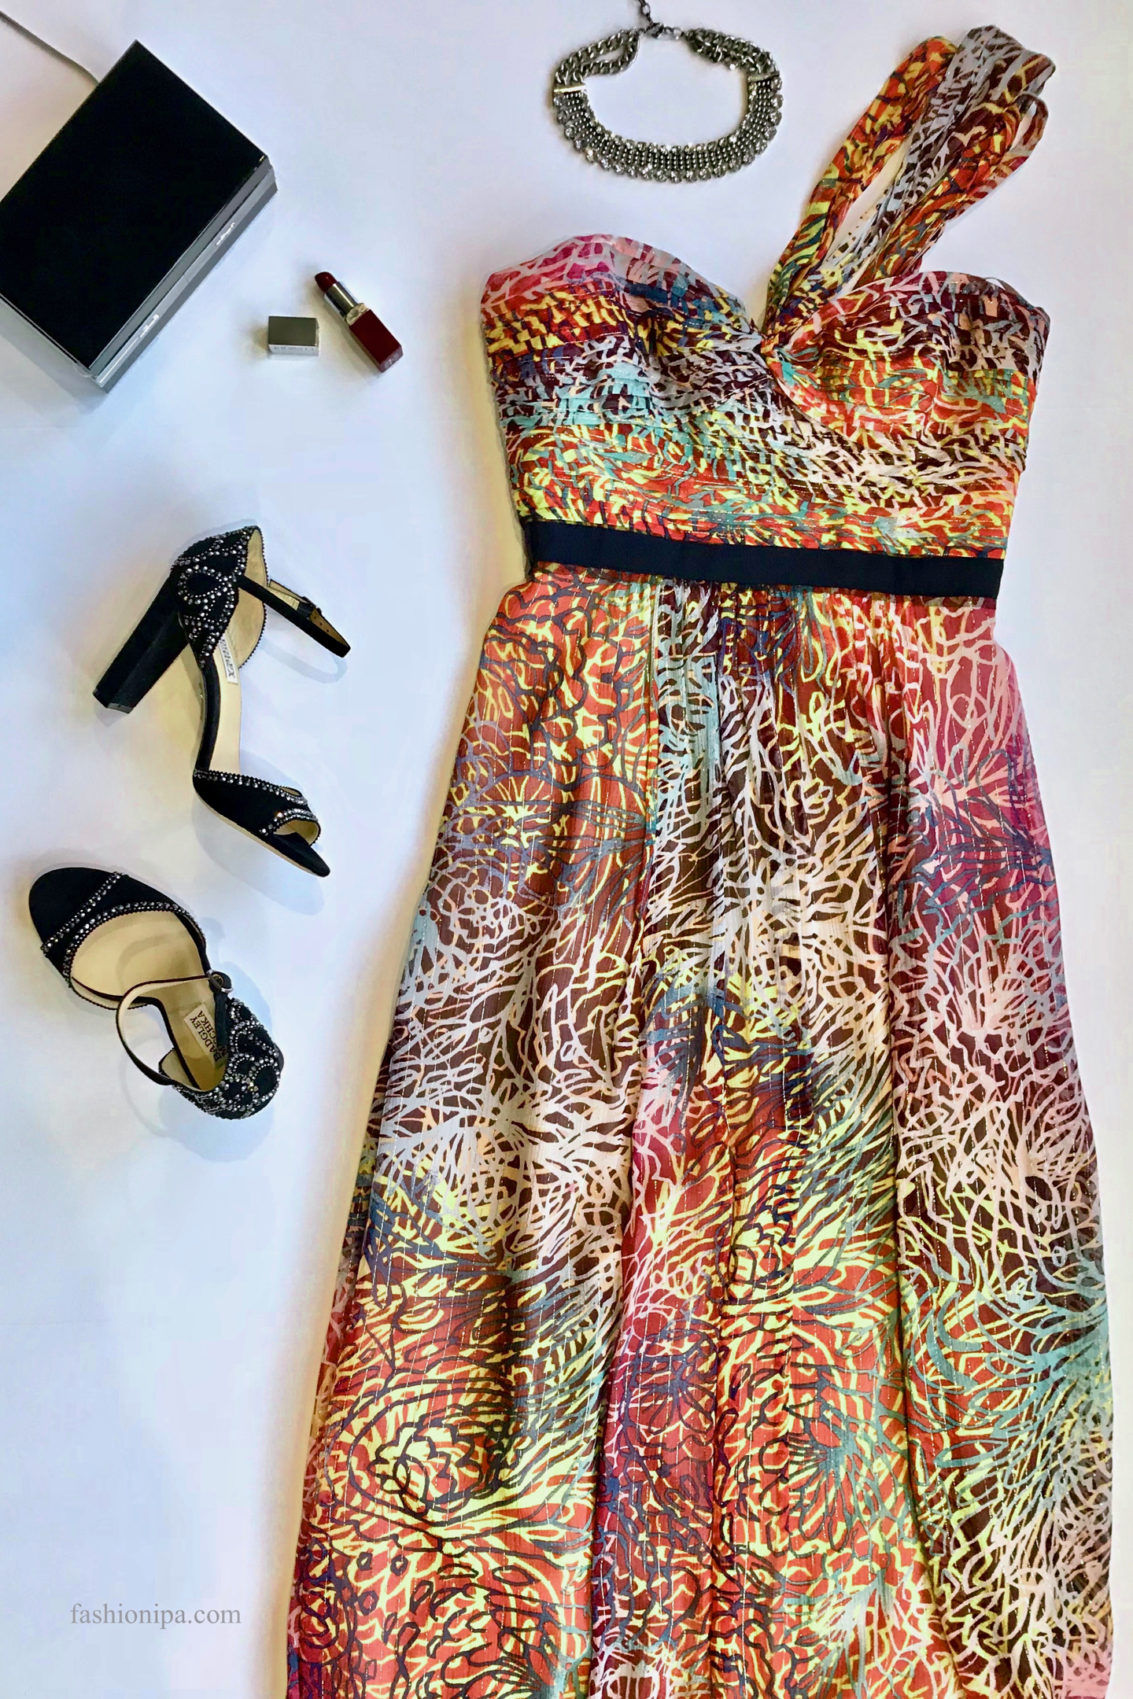 Printed gown, black box clutch, red lipstick, statement necklace, suede rhinestone shoes.